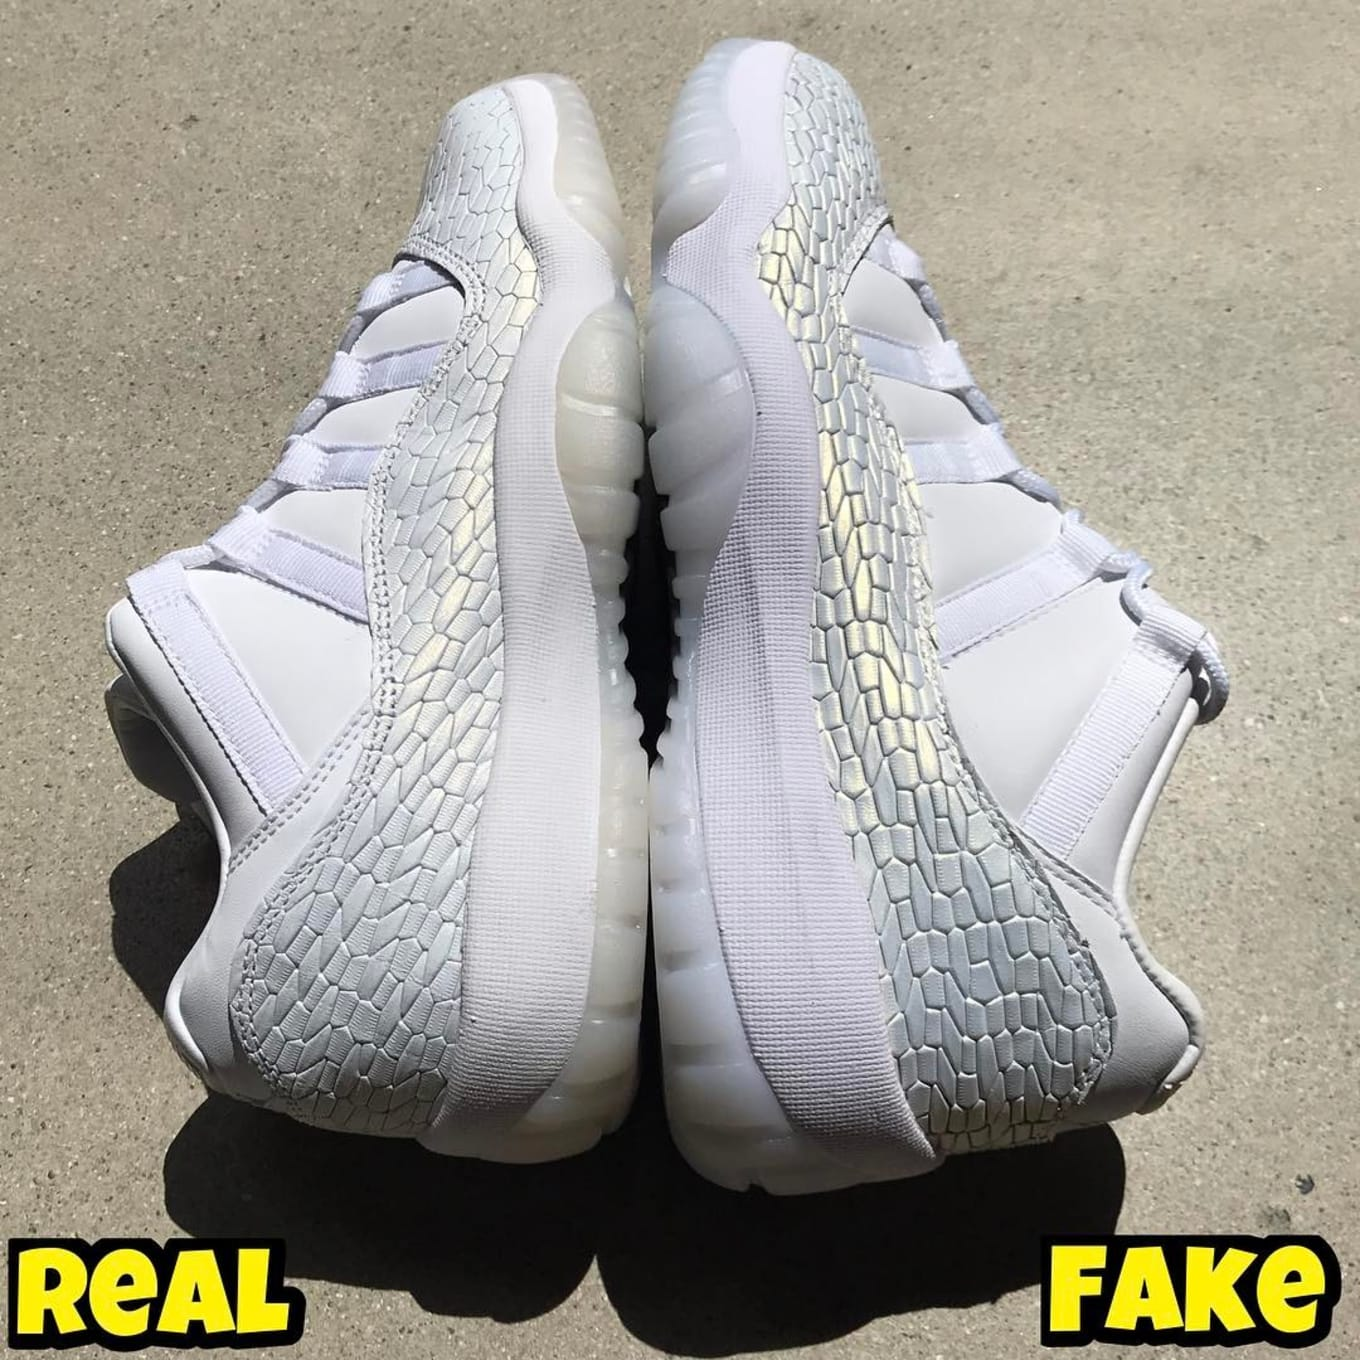 huge discount 72265 536dd Air Jordan 11 Low White Heiress Real Fake Legit Check | Sole ...